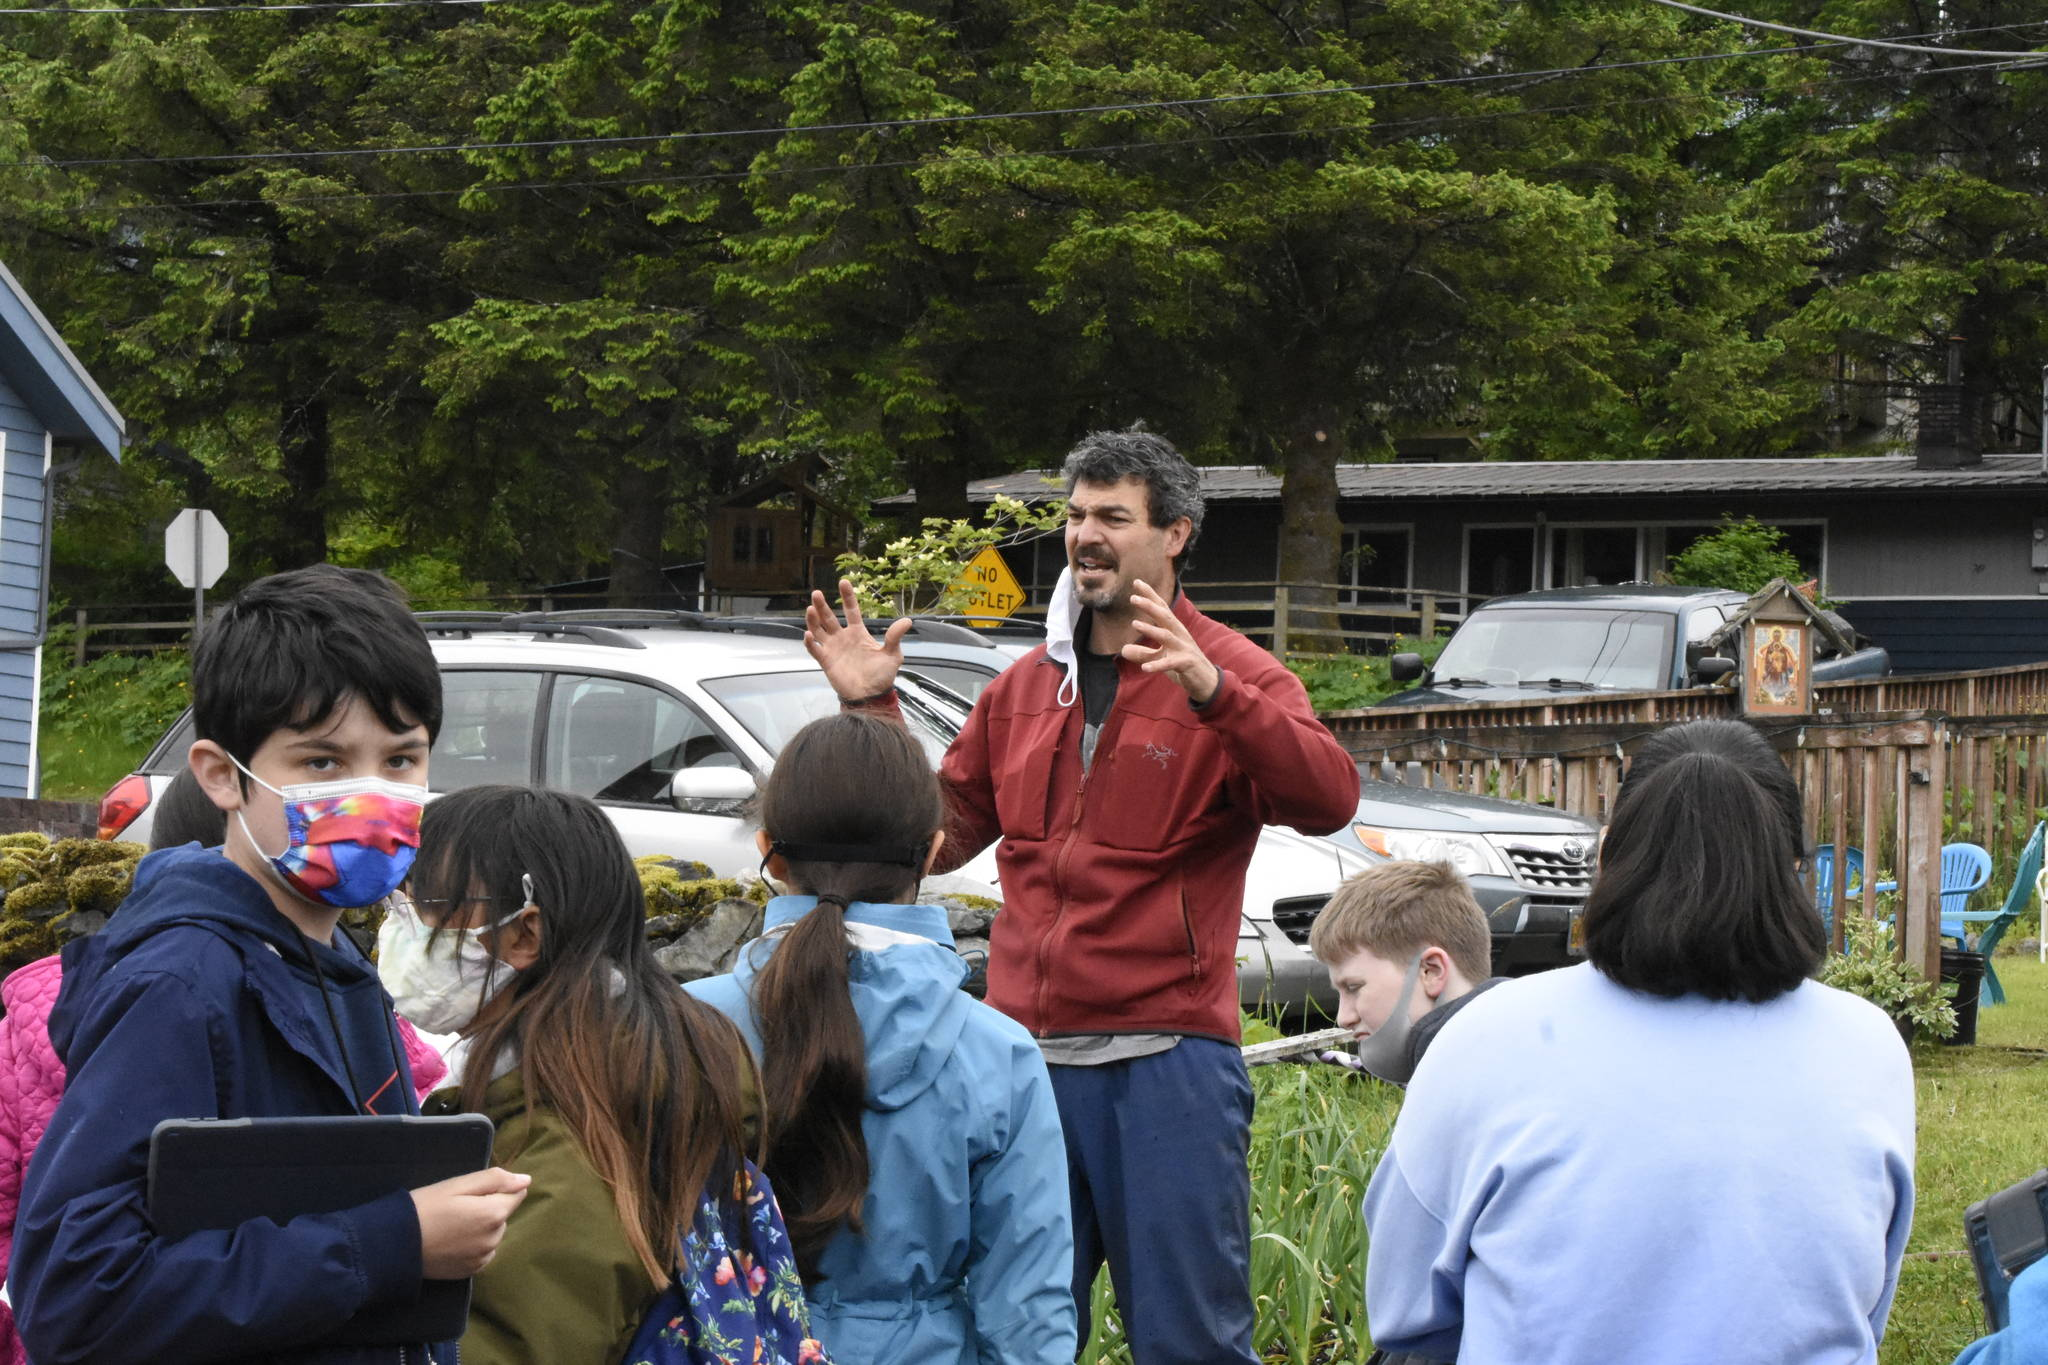 Darren Snyder, who helps manage community gardens as part of the the University of Alaska Fairbanks Cooperative Extension Service, talks to kids about gardening in Southeast Alaska on June 11, 2021. (Peter Segall / Juneau Empire)